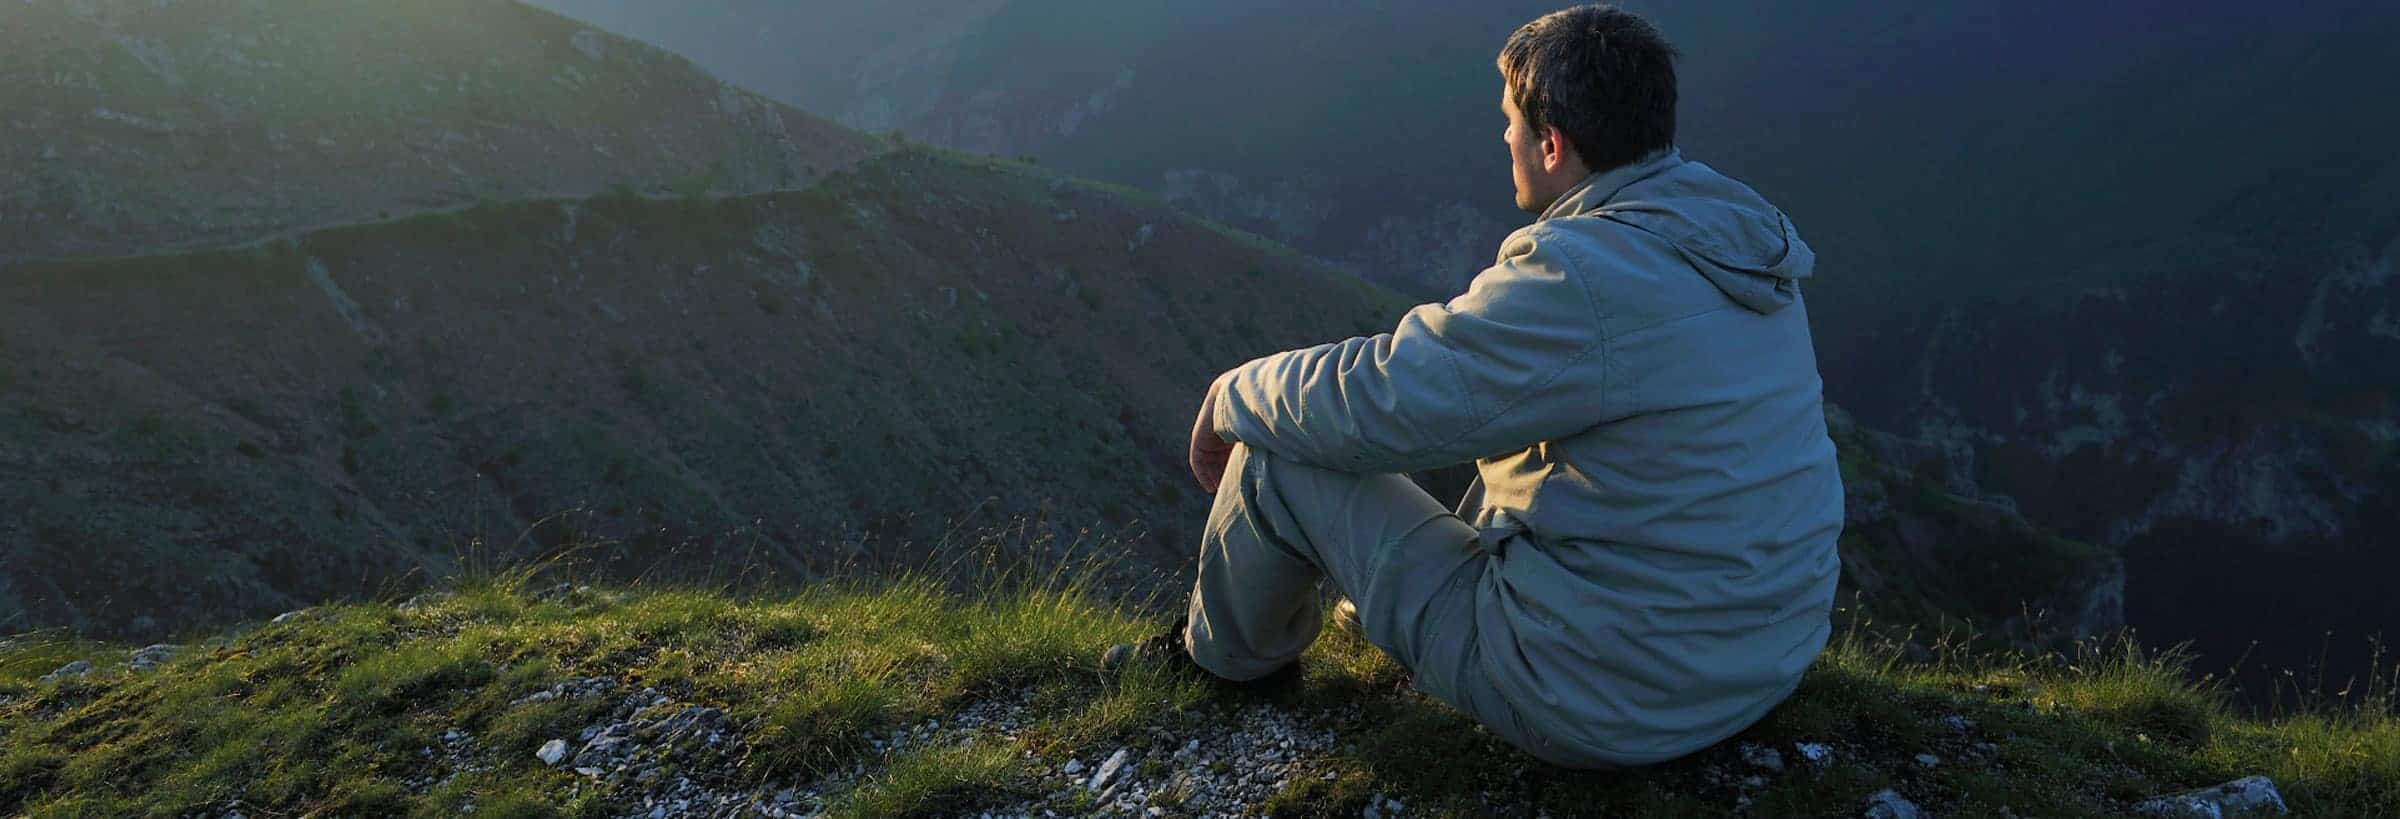 The Practice Of Mindfulness In Recovery